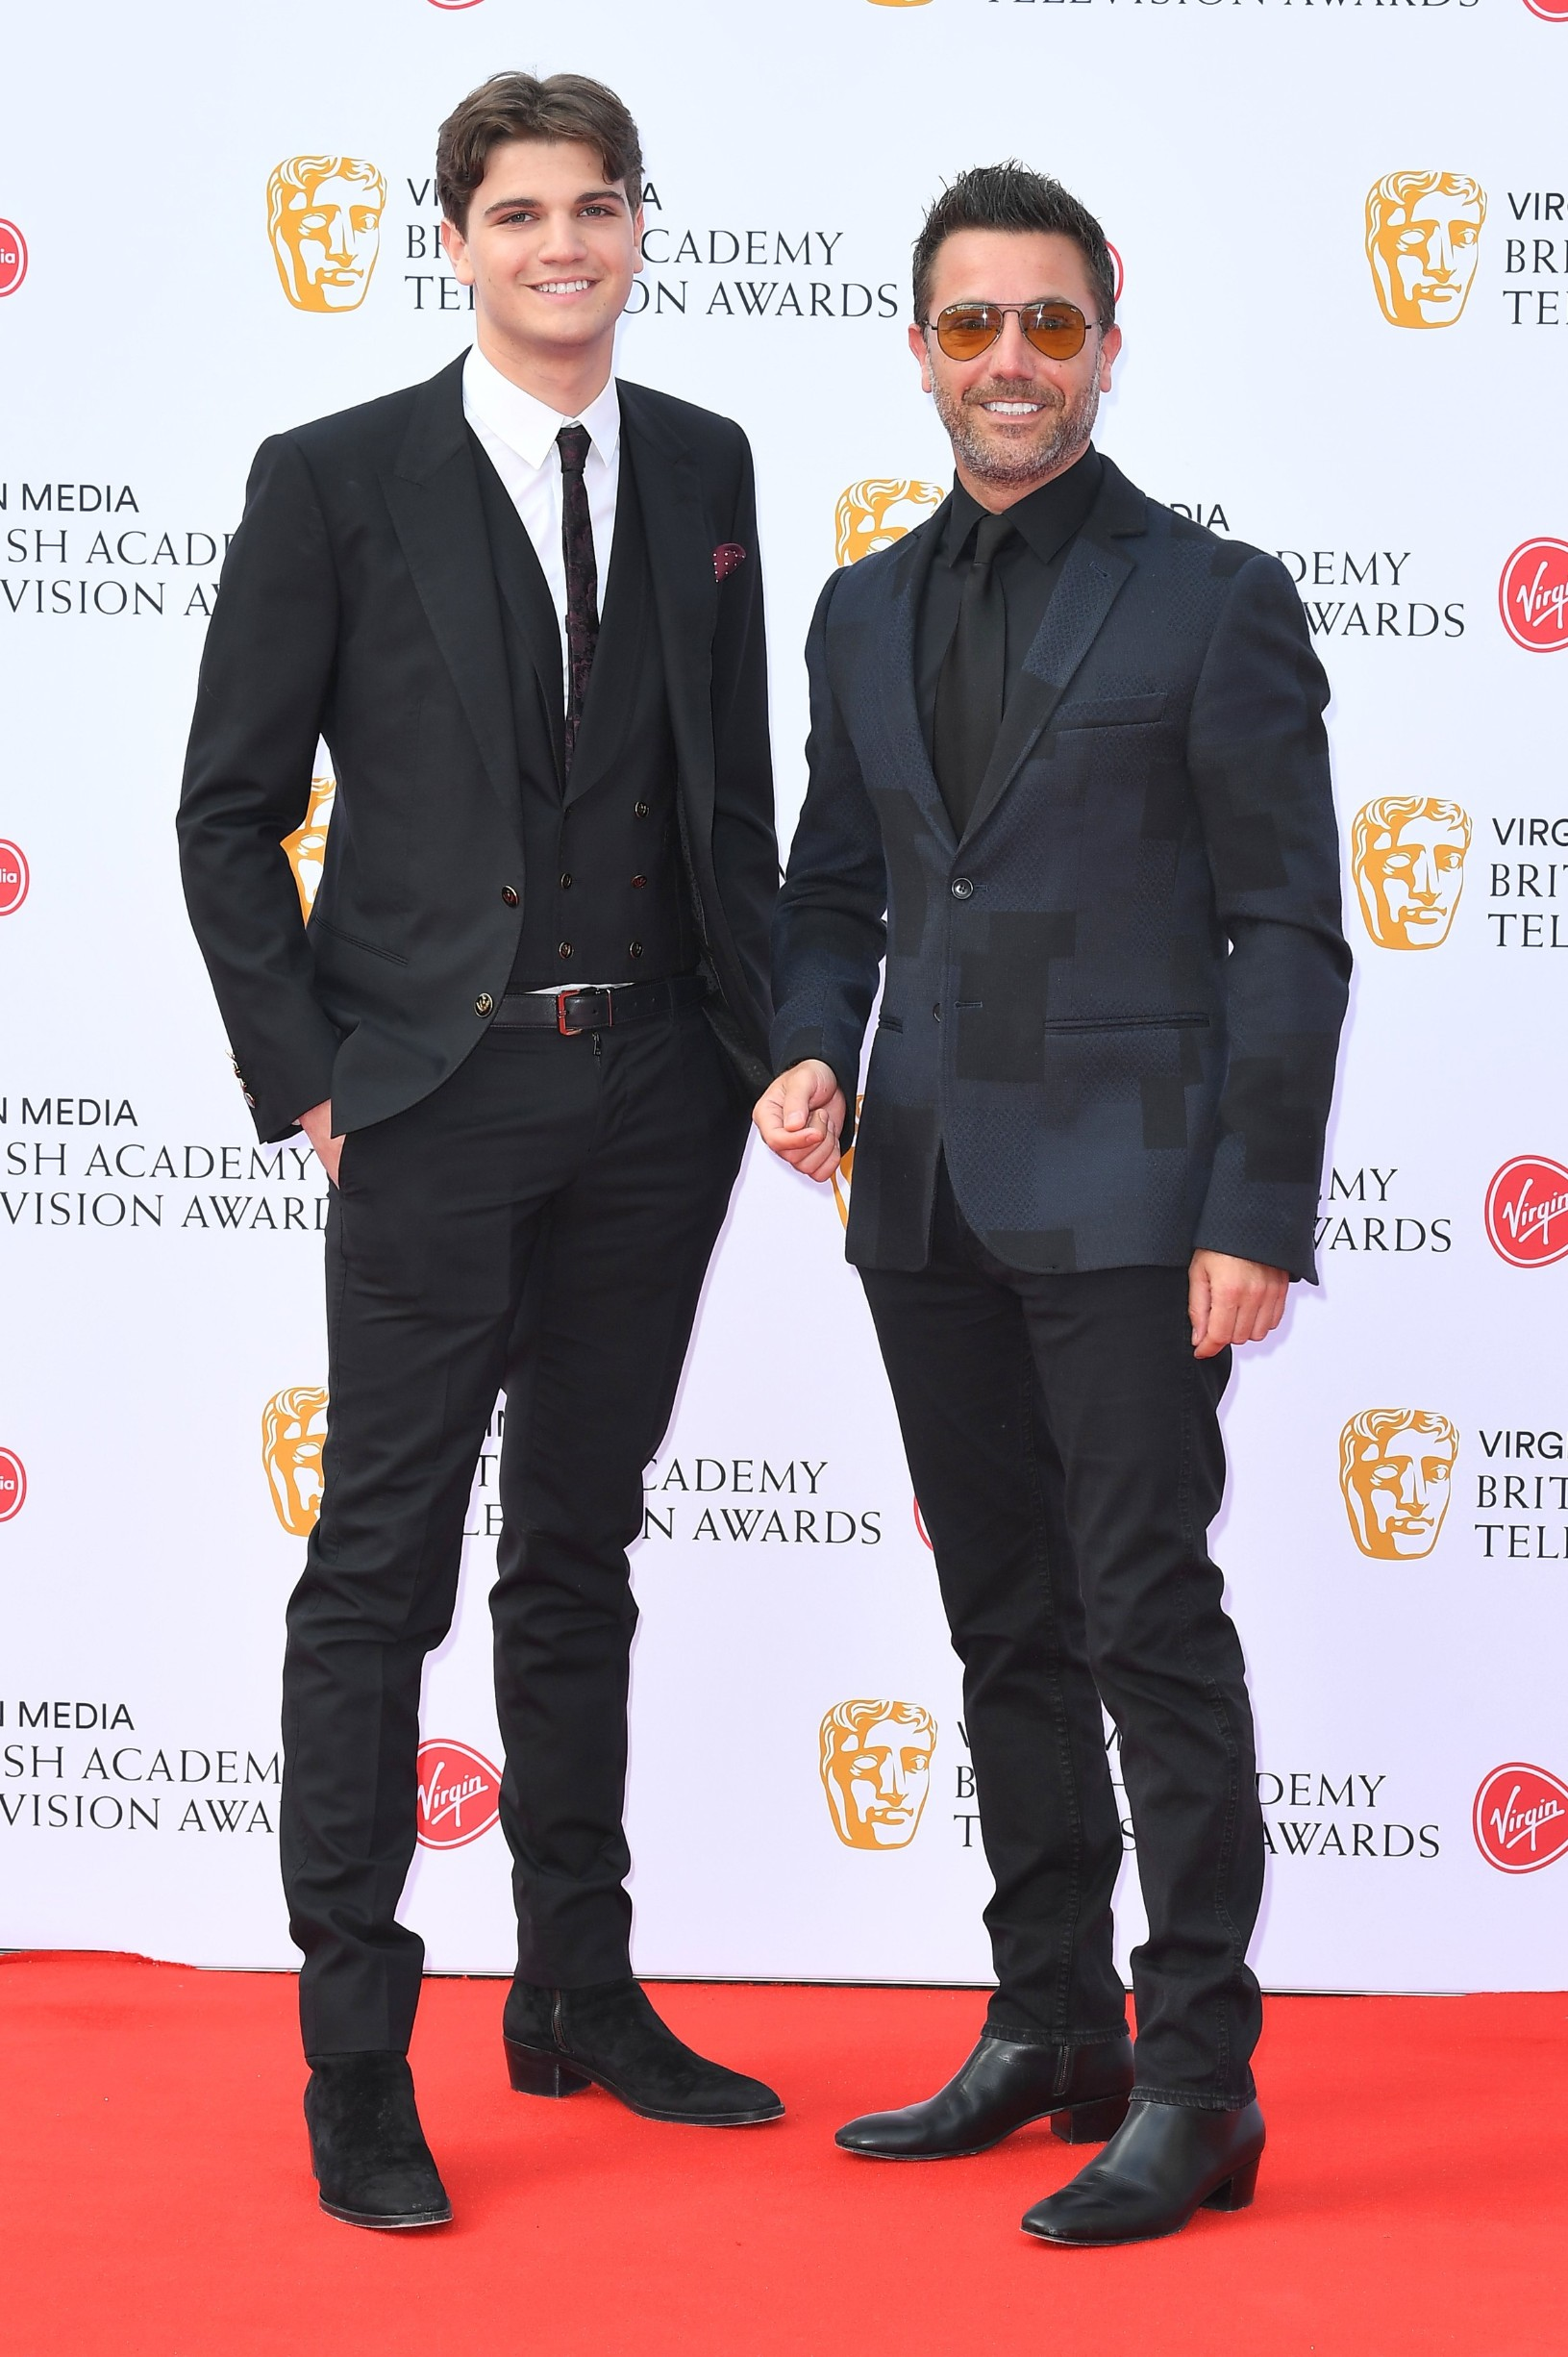 Gino D'Acampo British Academy Television Awards, Arrivals, Royal Festival Hall, London, UK - 12 May 2019, Image: 432854751, License: Rights-managed, Restrictions: , Model Release: no, Credit line: Anthony Harvey/BAFTA / Shutterstock Editorial / Profimedia